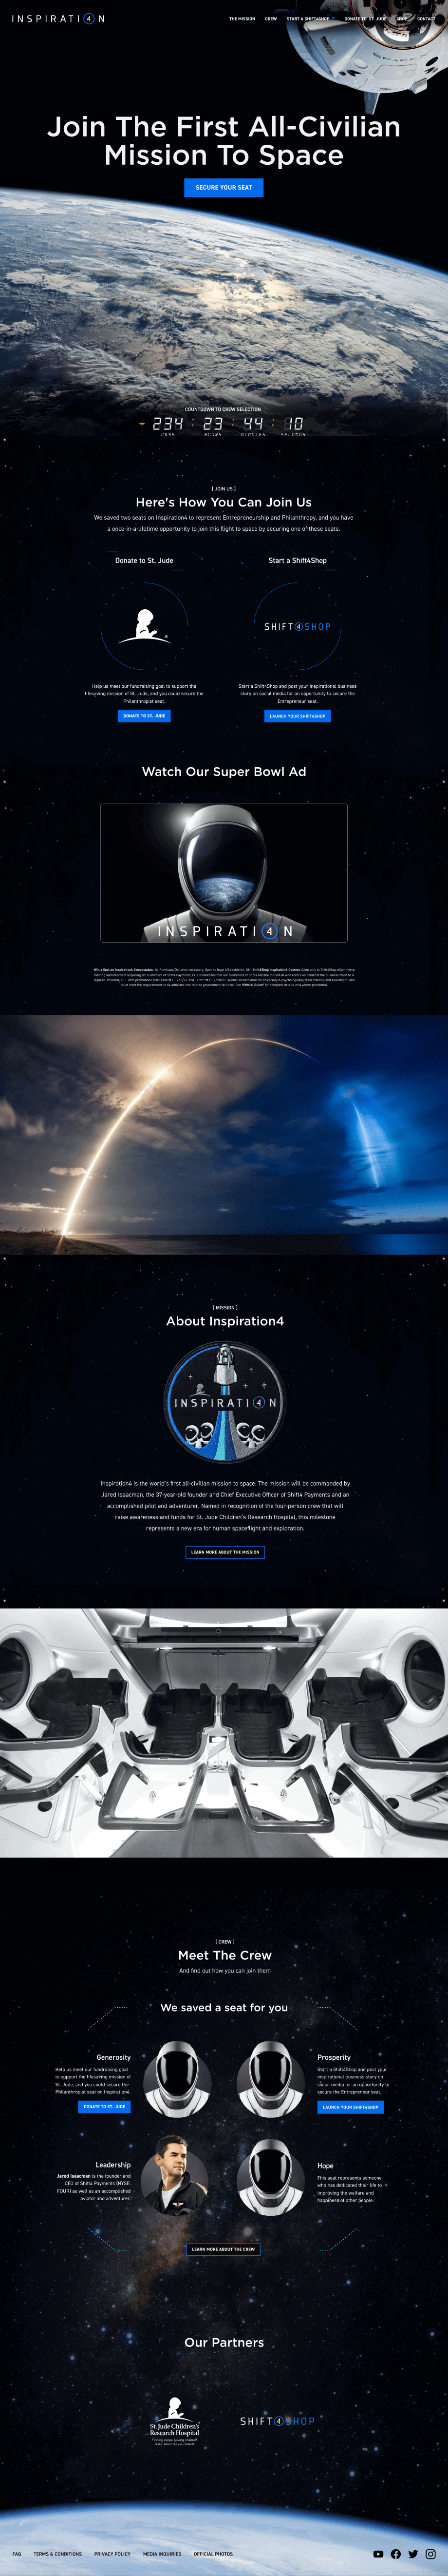 Inspiration 4 Discovery Homepage